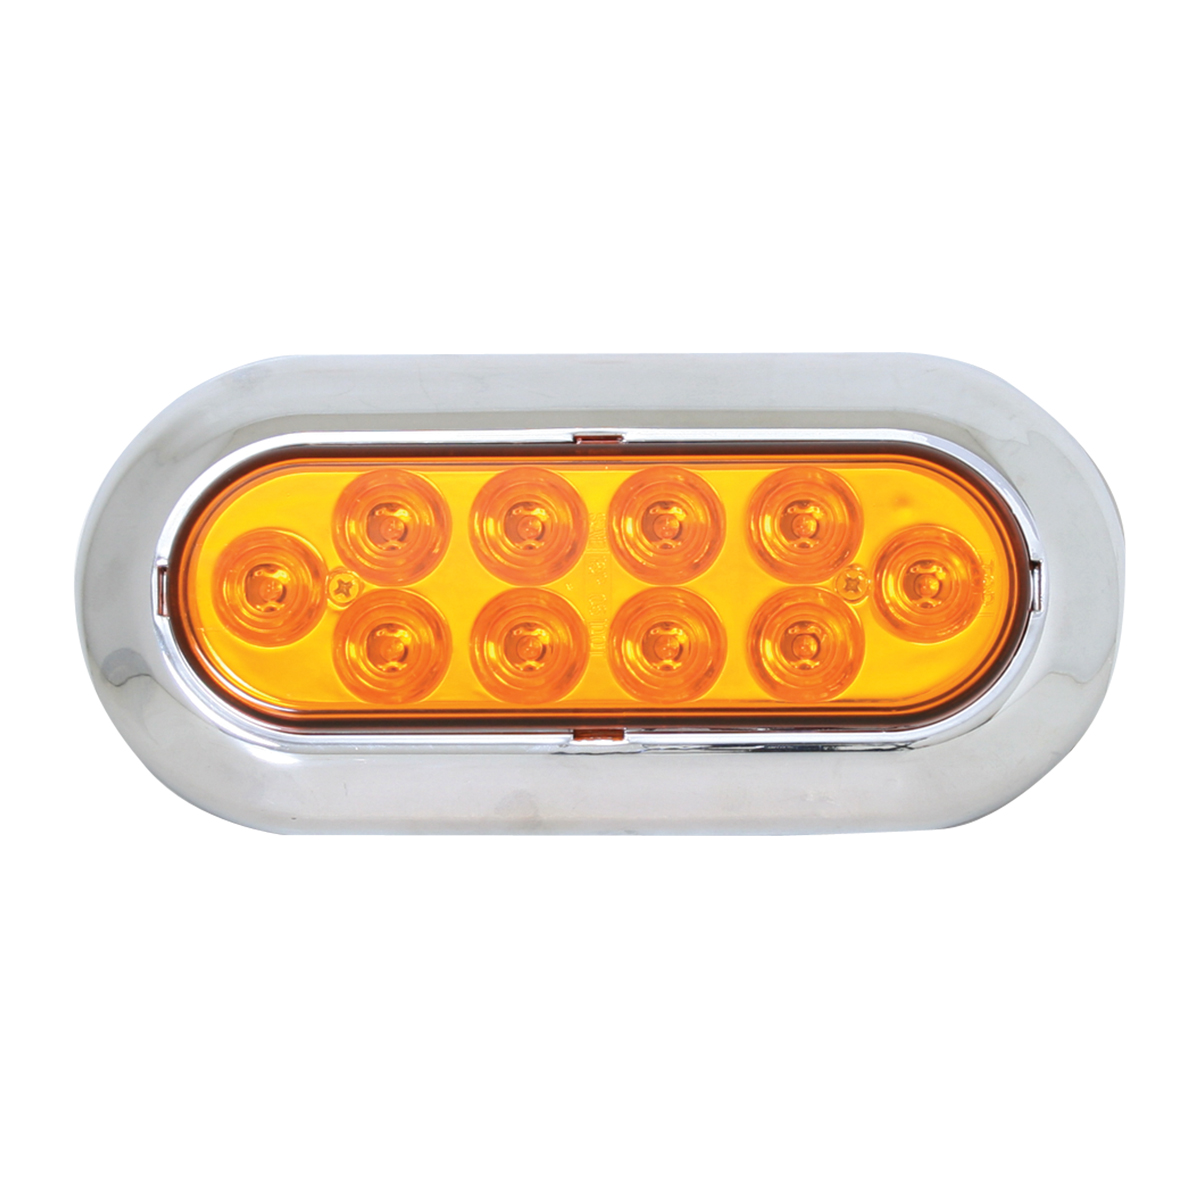 76874 Surface Mount Oval Mega 10 Plus LED Light